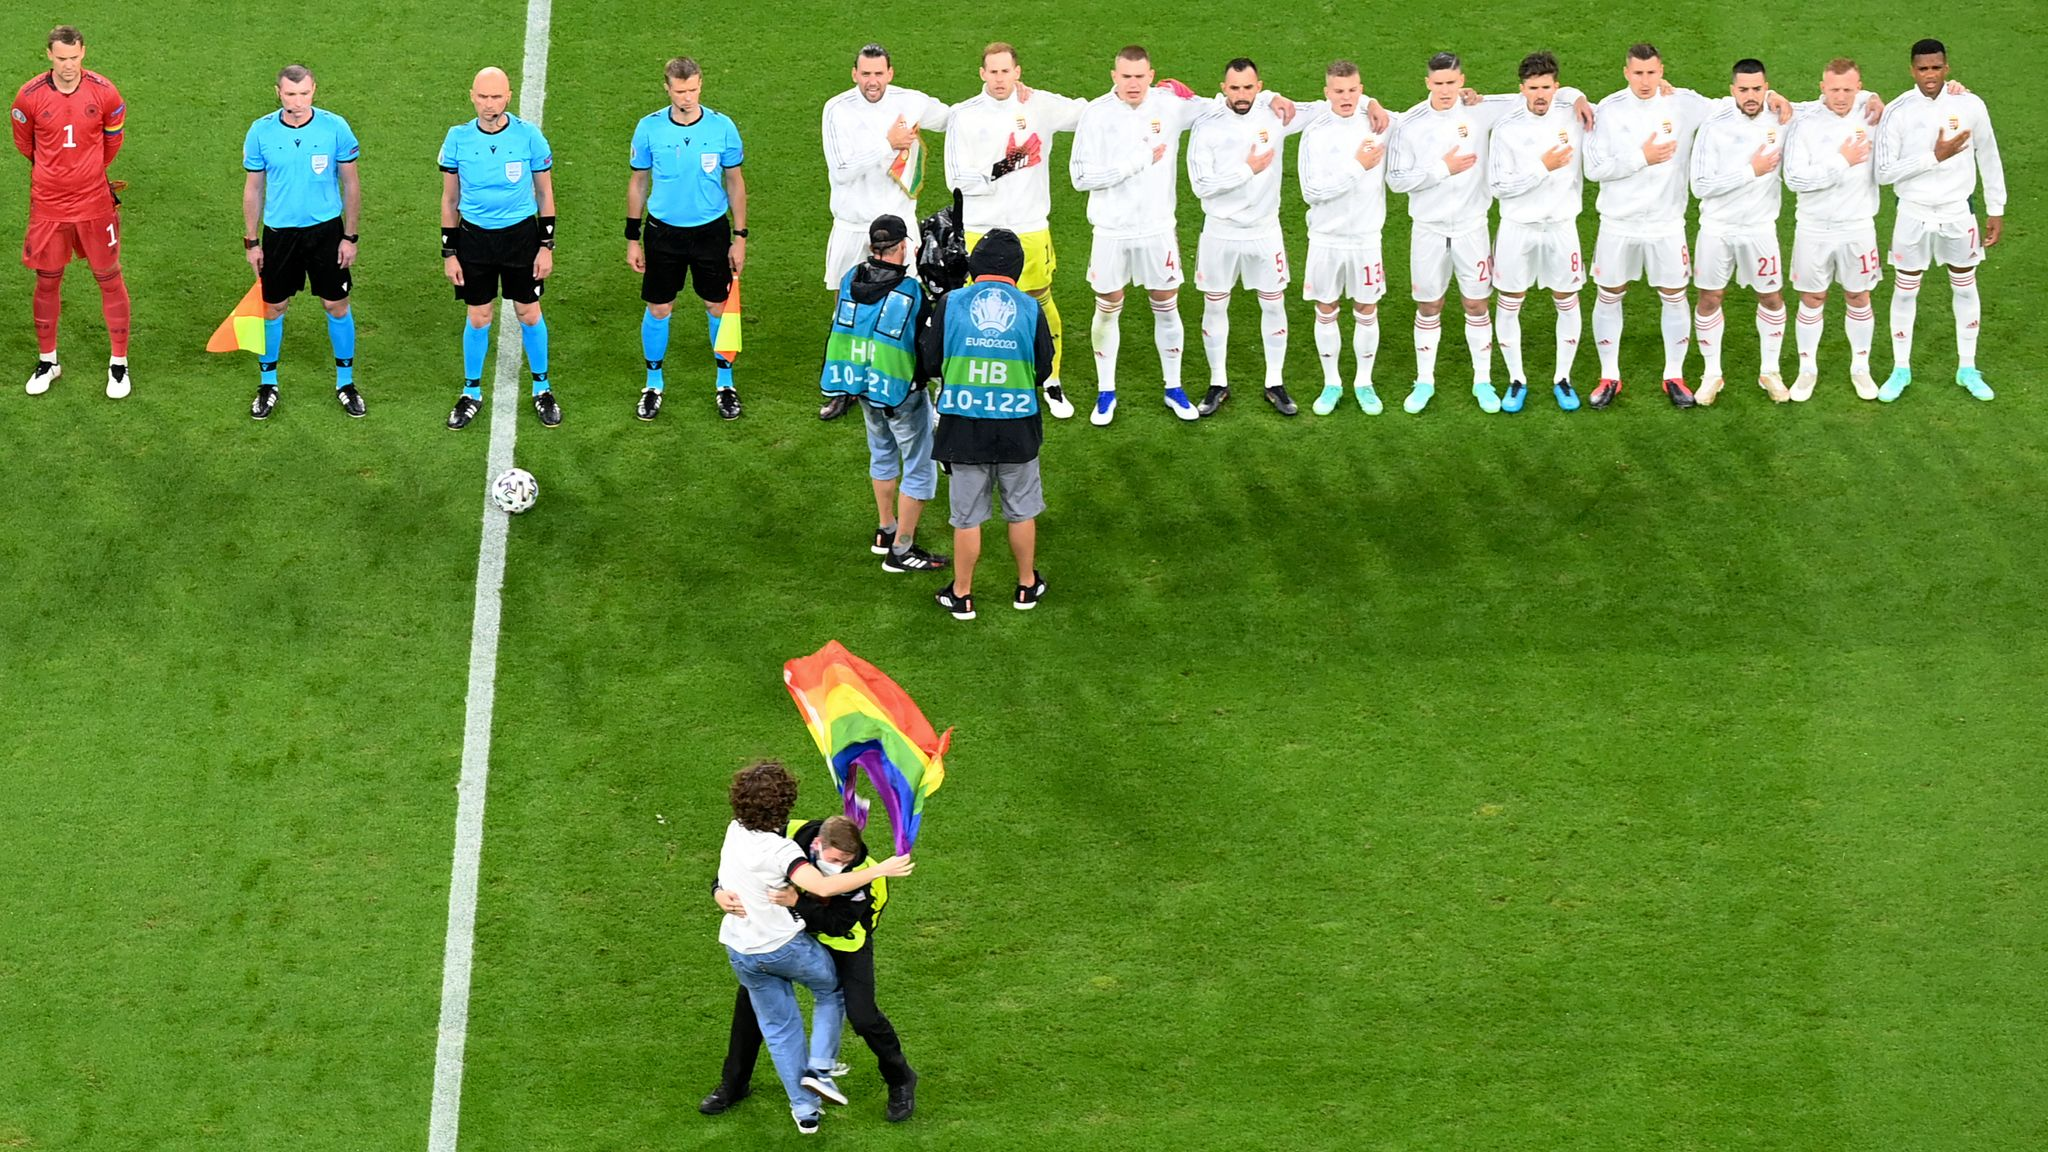 Pitch invader with rainbow flag tackled by stewards during protest ahead of Germany  vs Hungary   Football News   Sky Sports